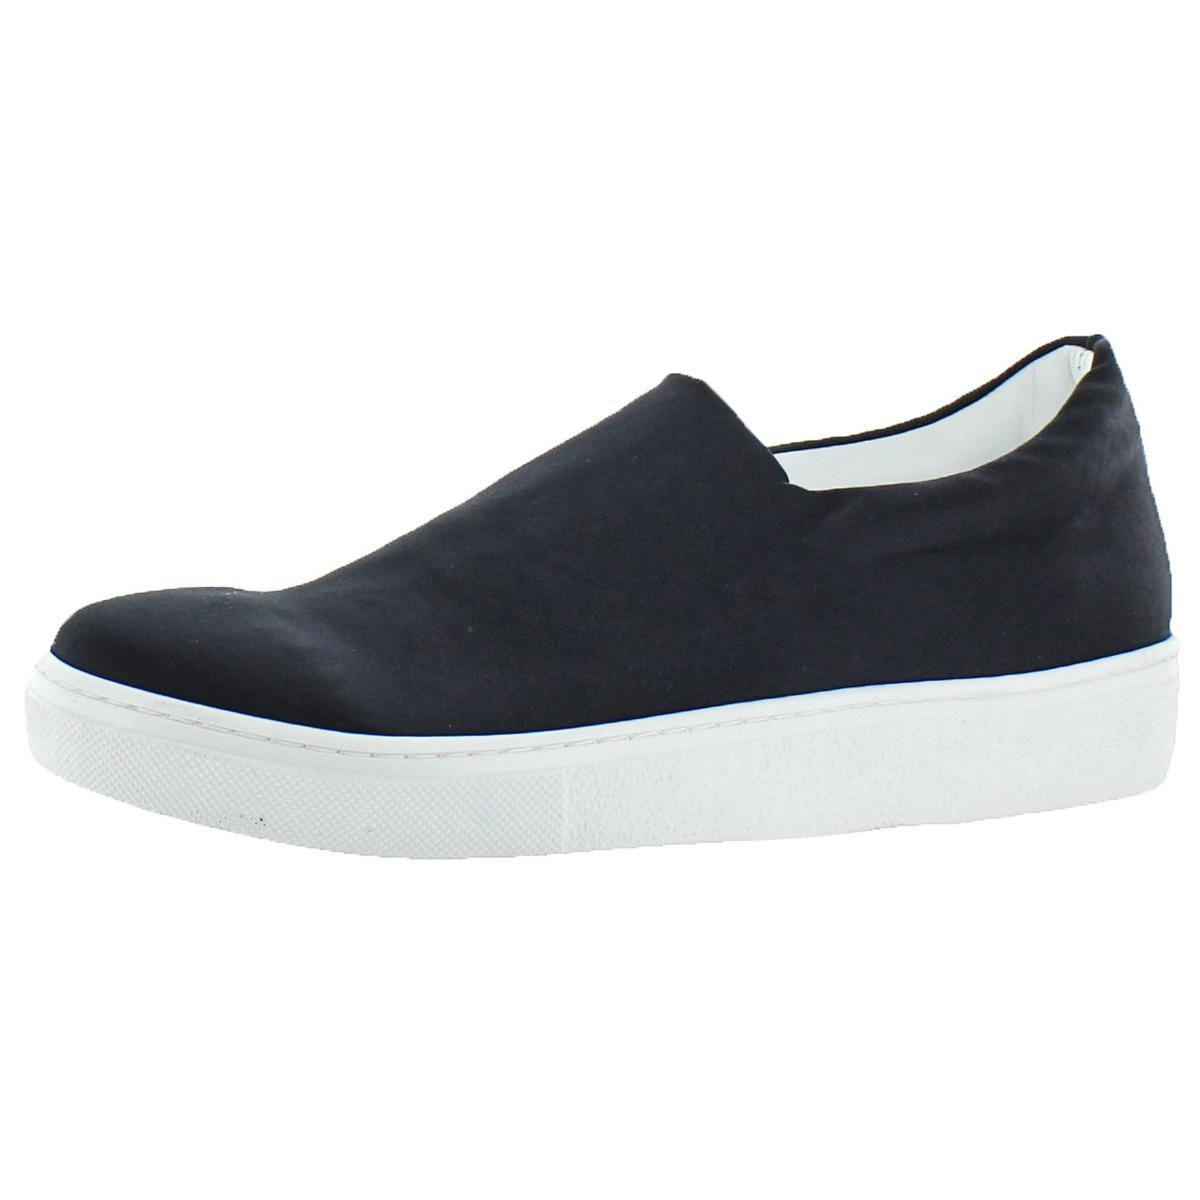 483ae3f83a8 Steven by Steve Madden. Black Womens Divide Low Top Trainer Fashion Sneakers